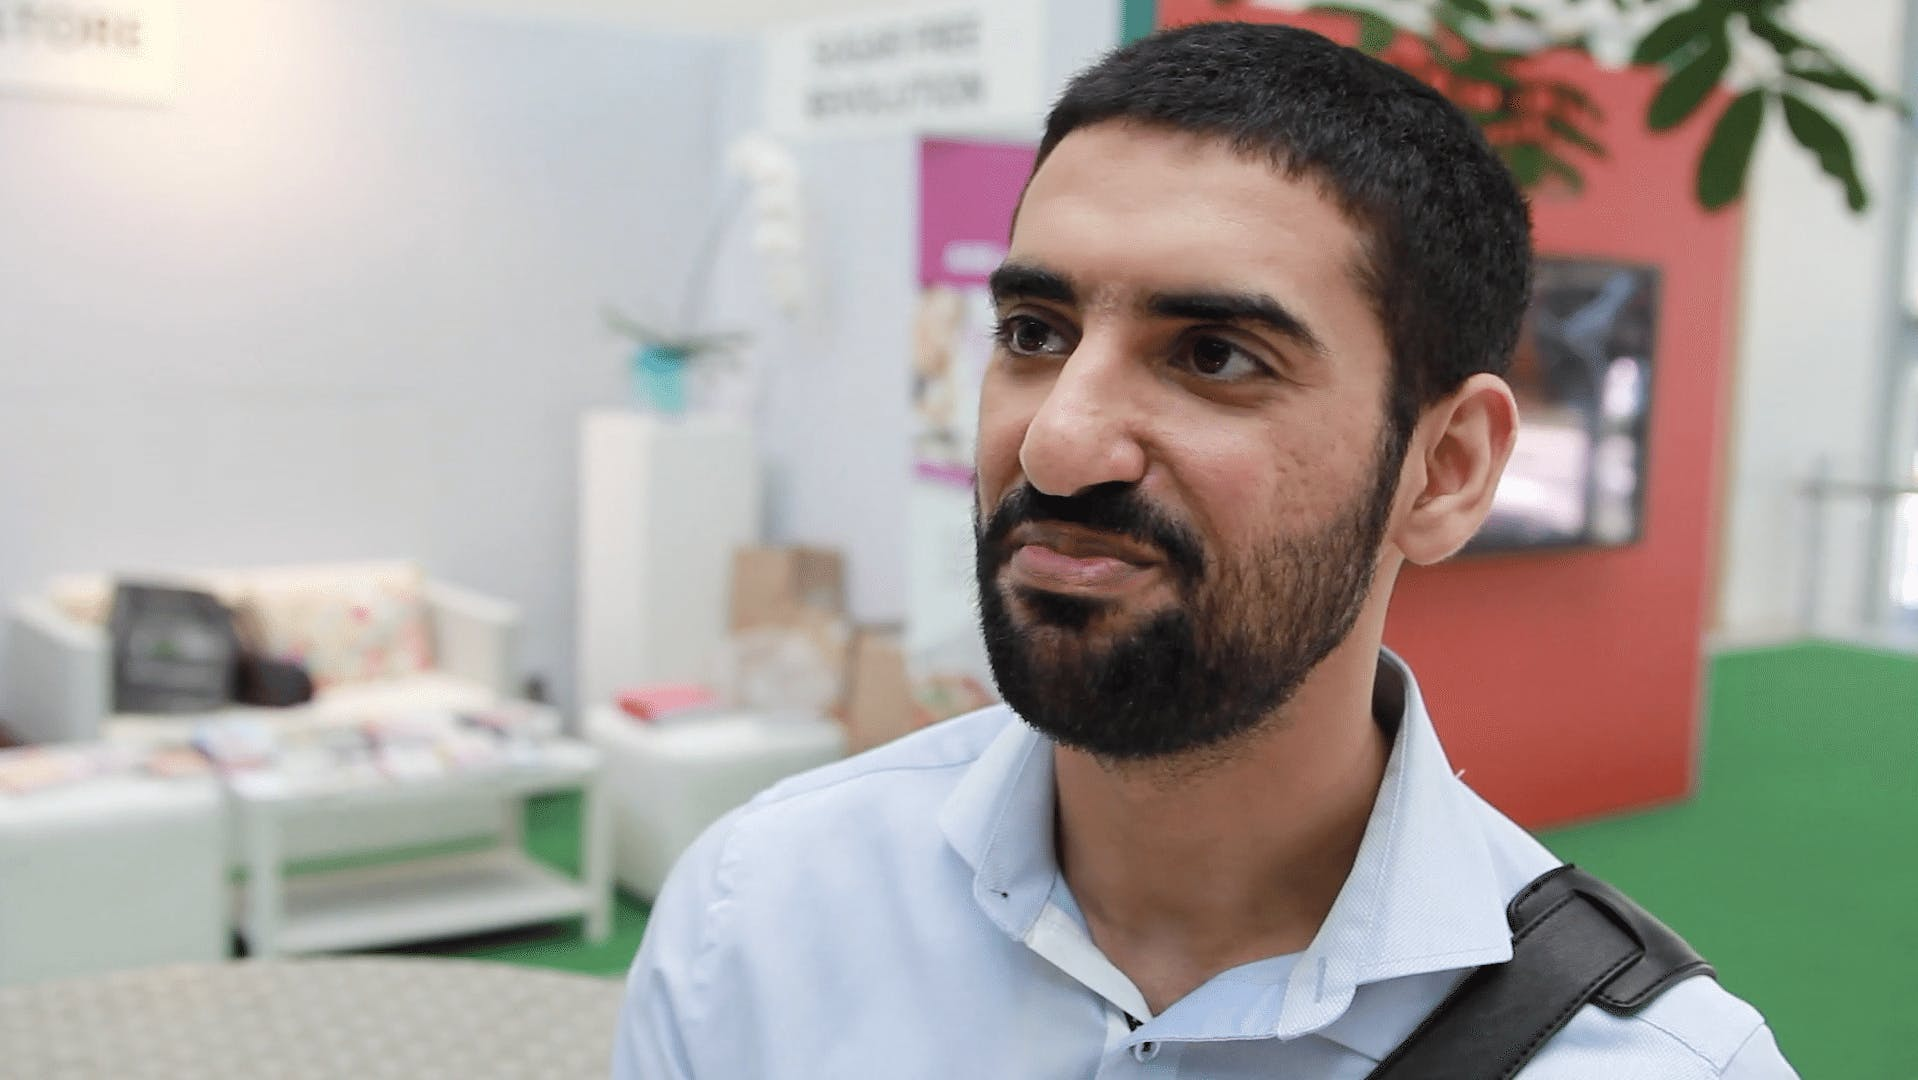 The only low-carb doctor in Saudi Arabia?